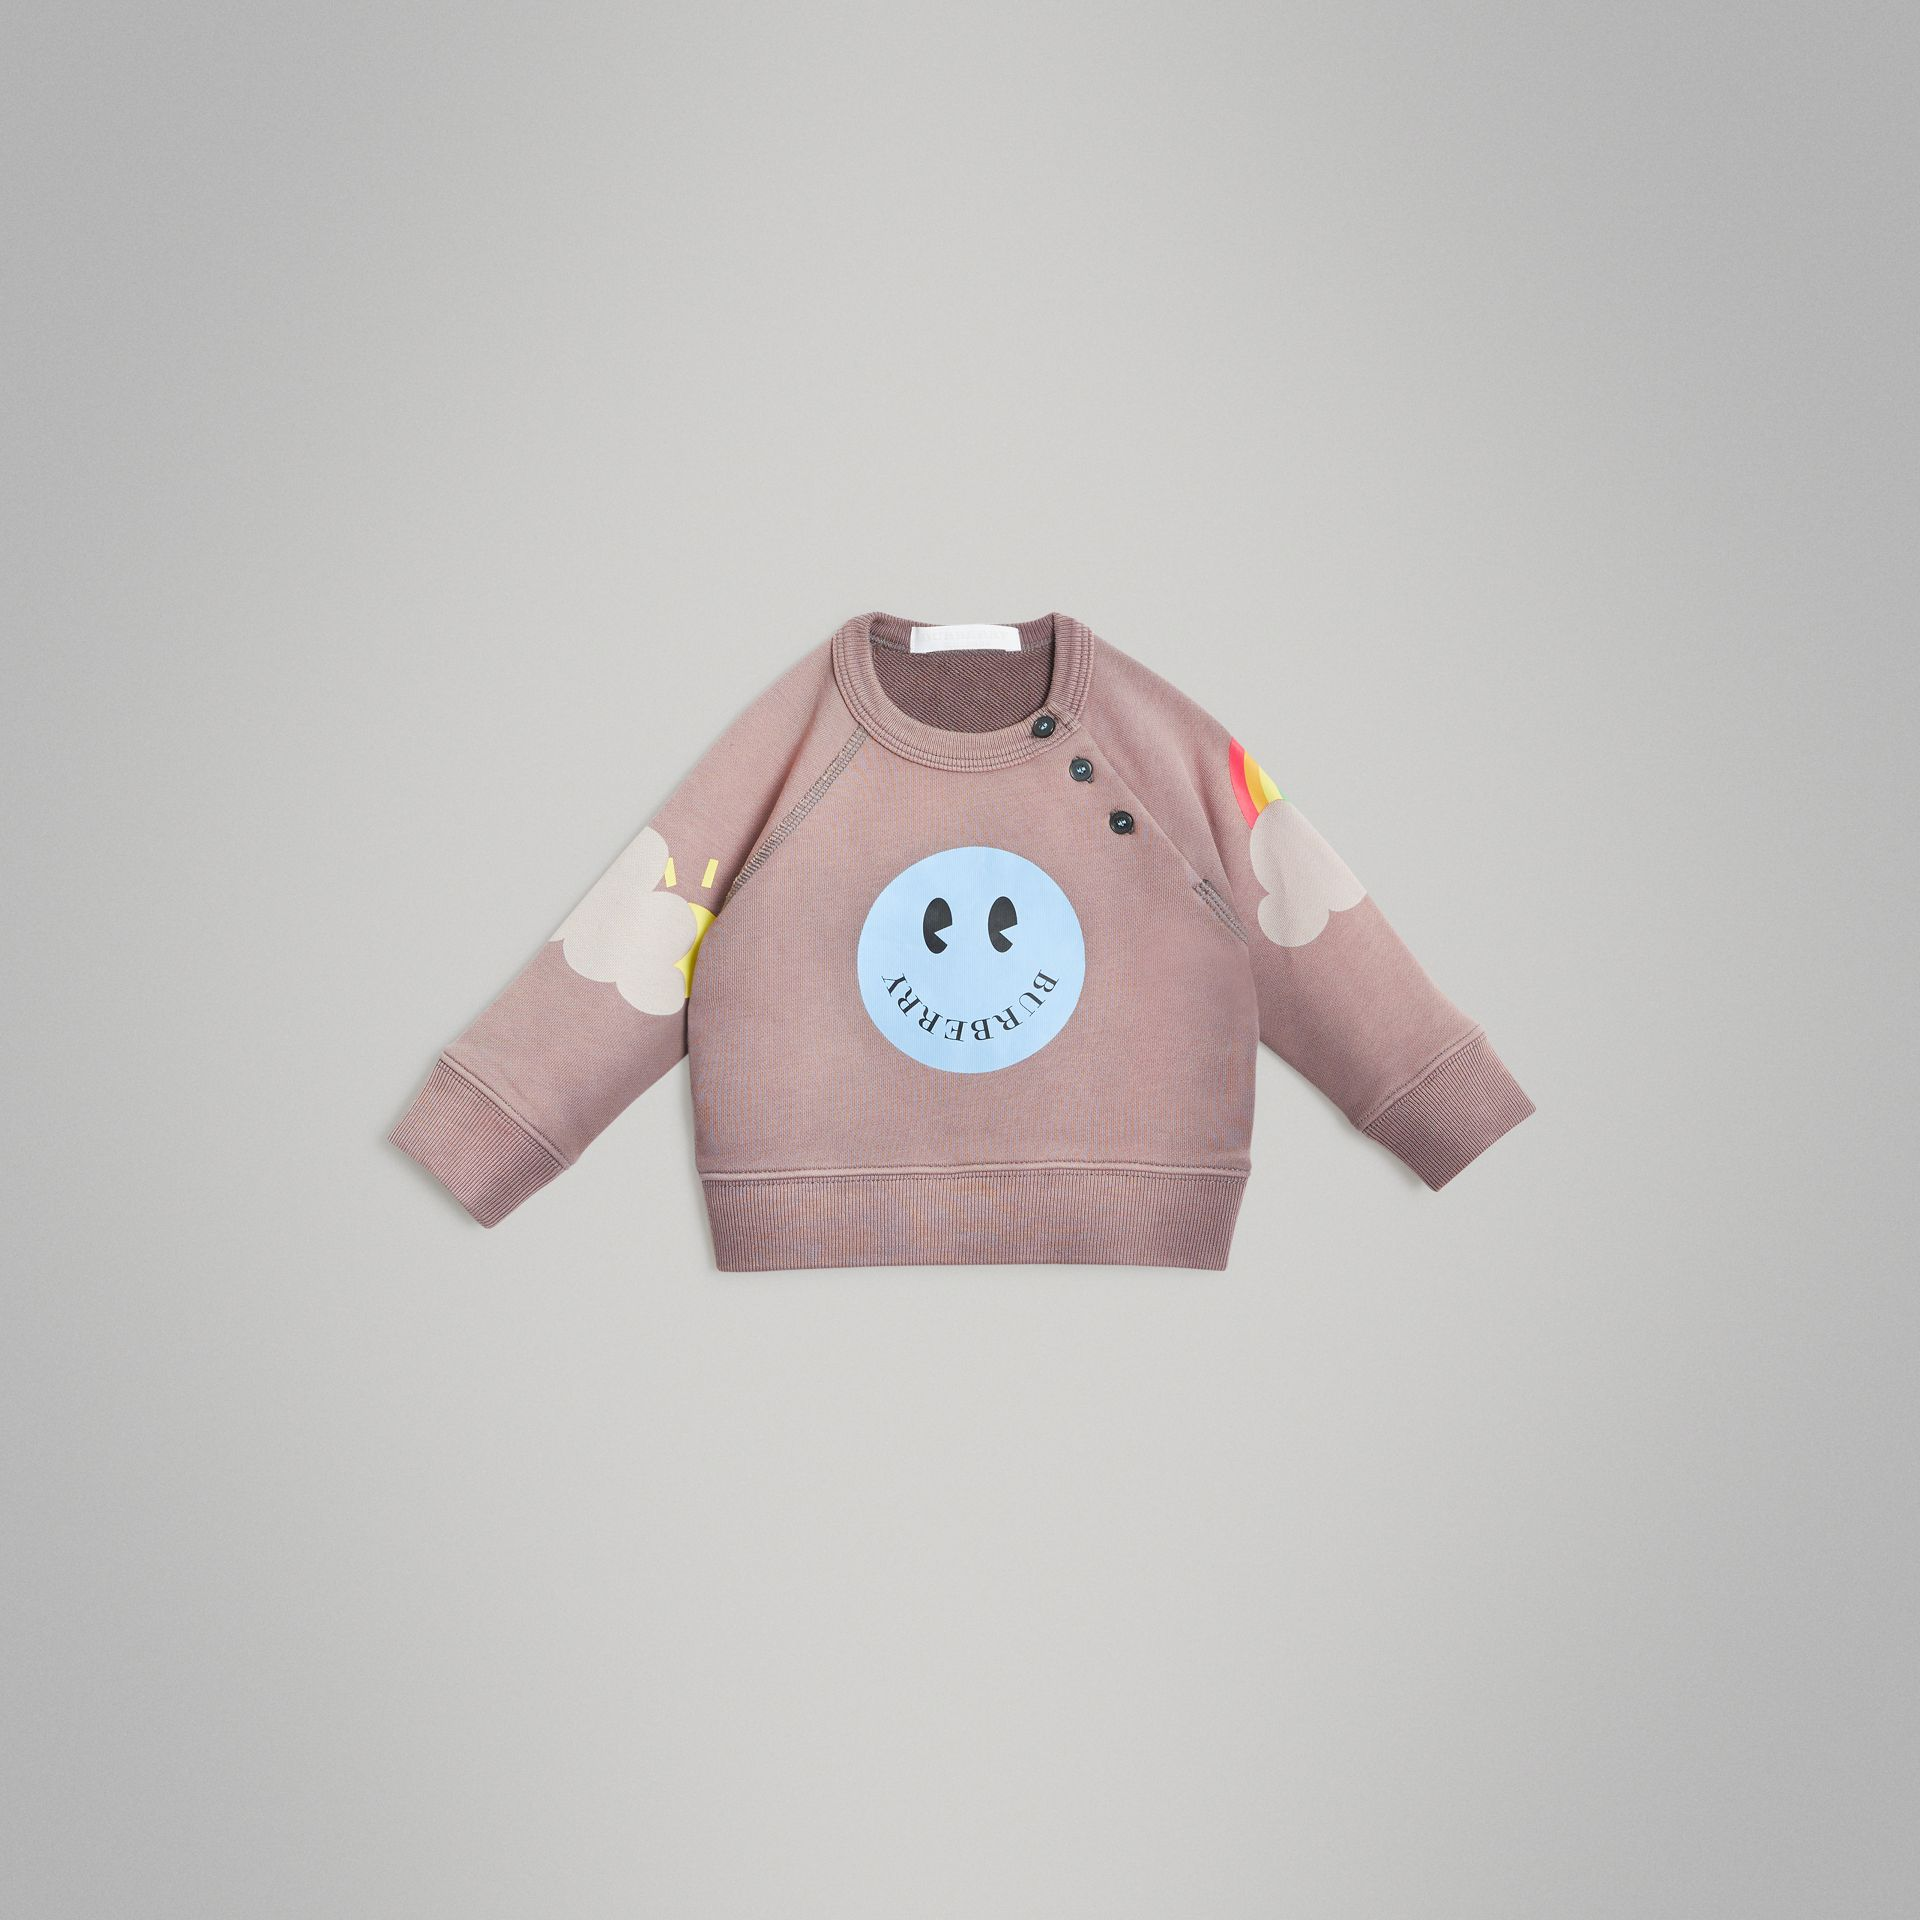 Smiley Face Print Cotton Sweatshirt in Mauve - Children | Burberry United Kingdom - gallery image 0